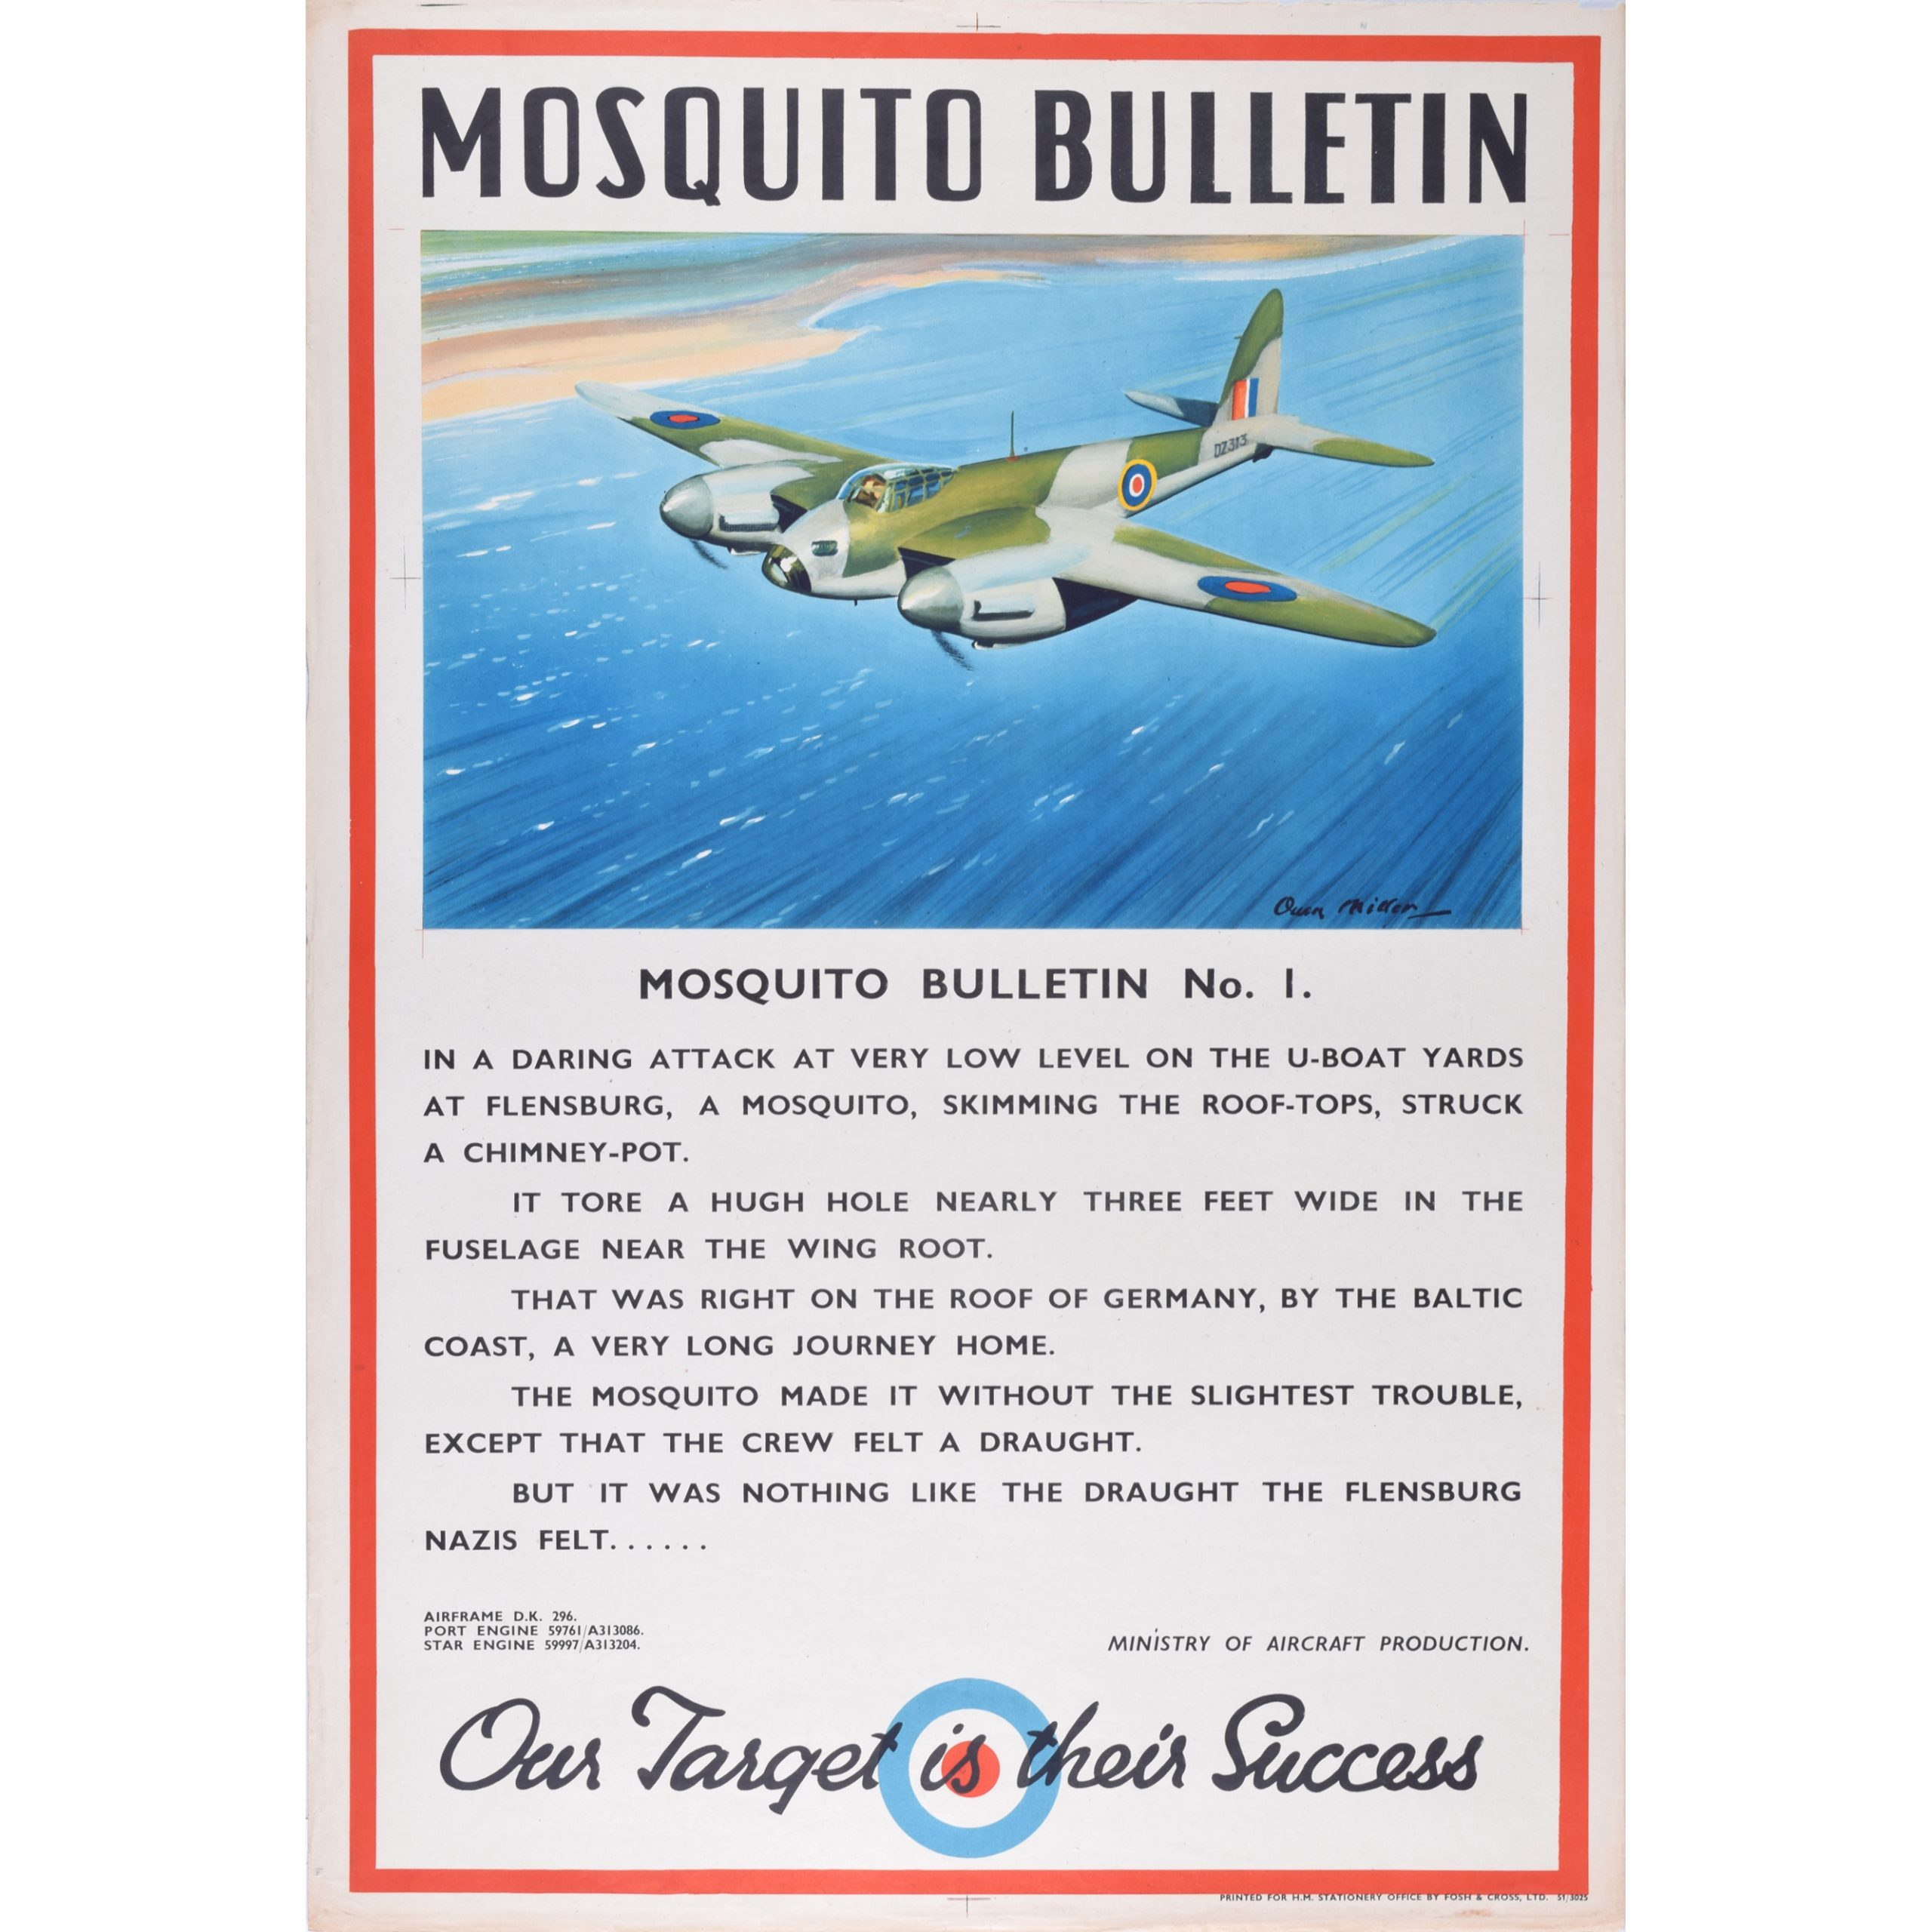 Mosquito Fighter Bomber WW2 Aeroplane Bulletin Owen Miller